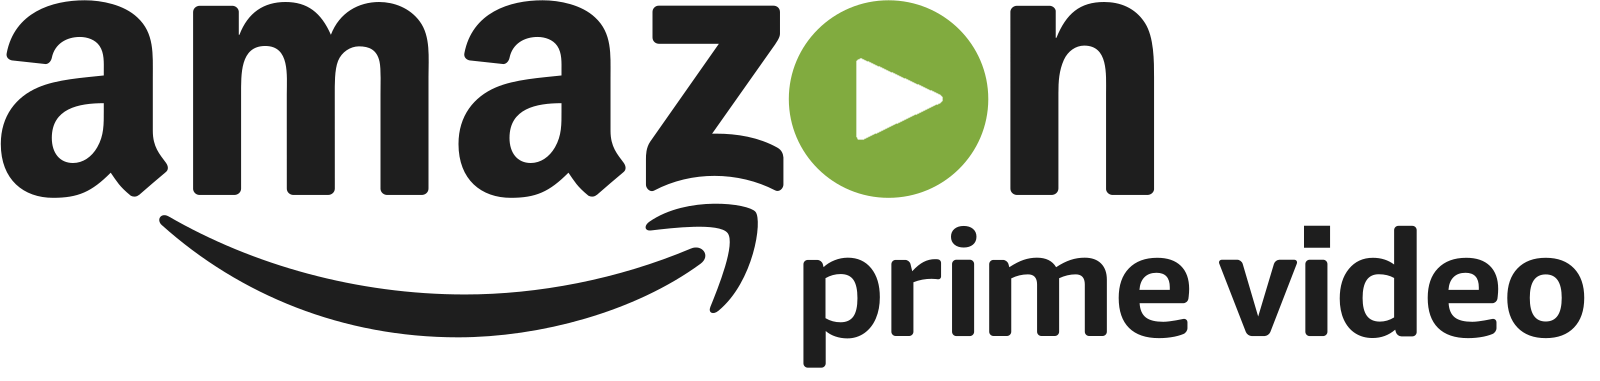 amazon prime video logo 3 - Amazon Prime Video Logo